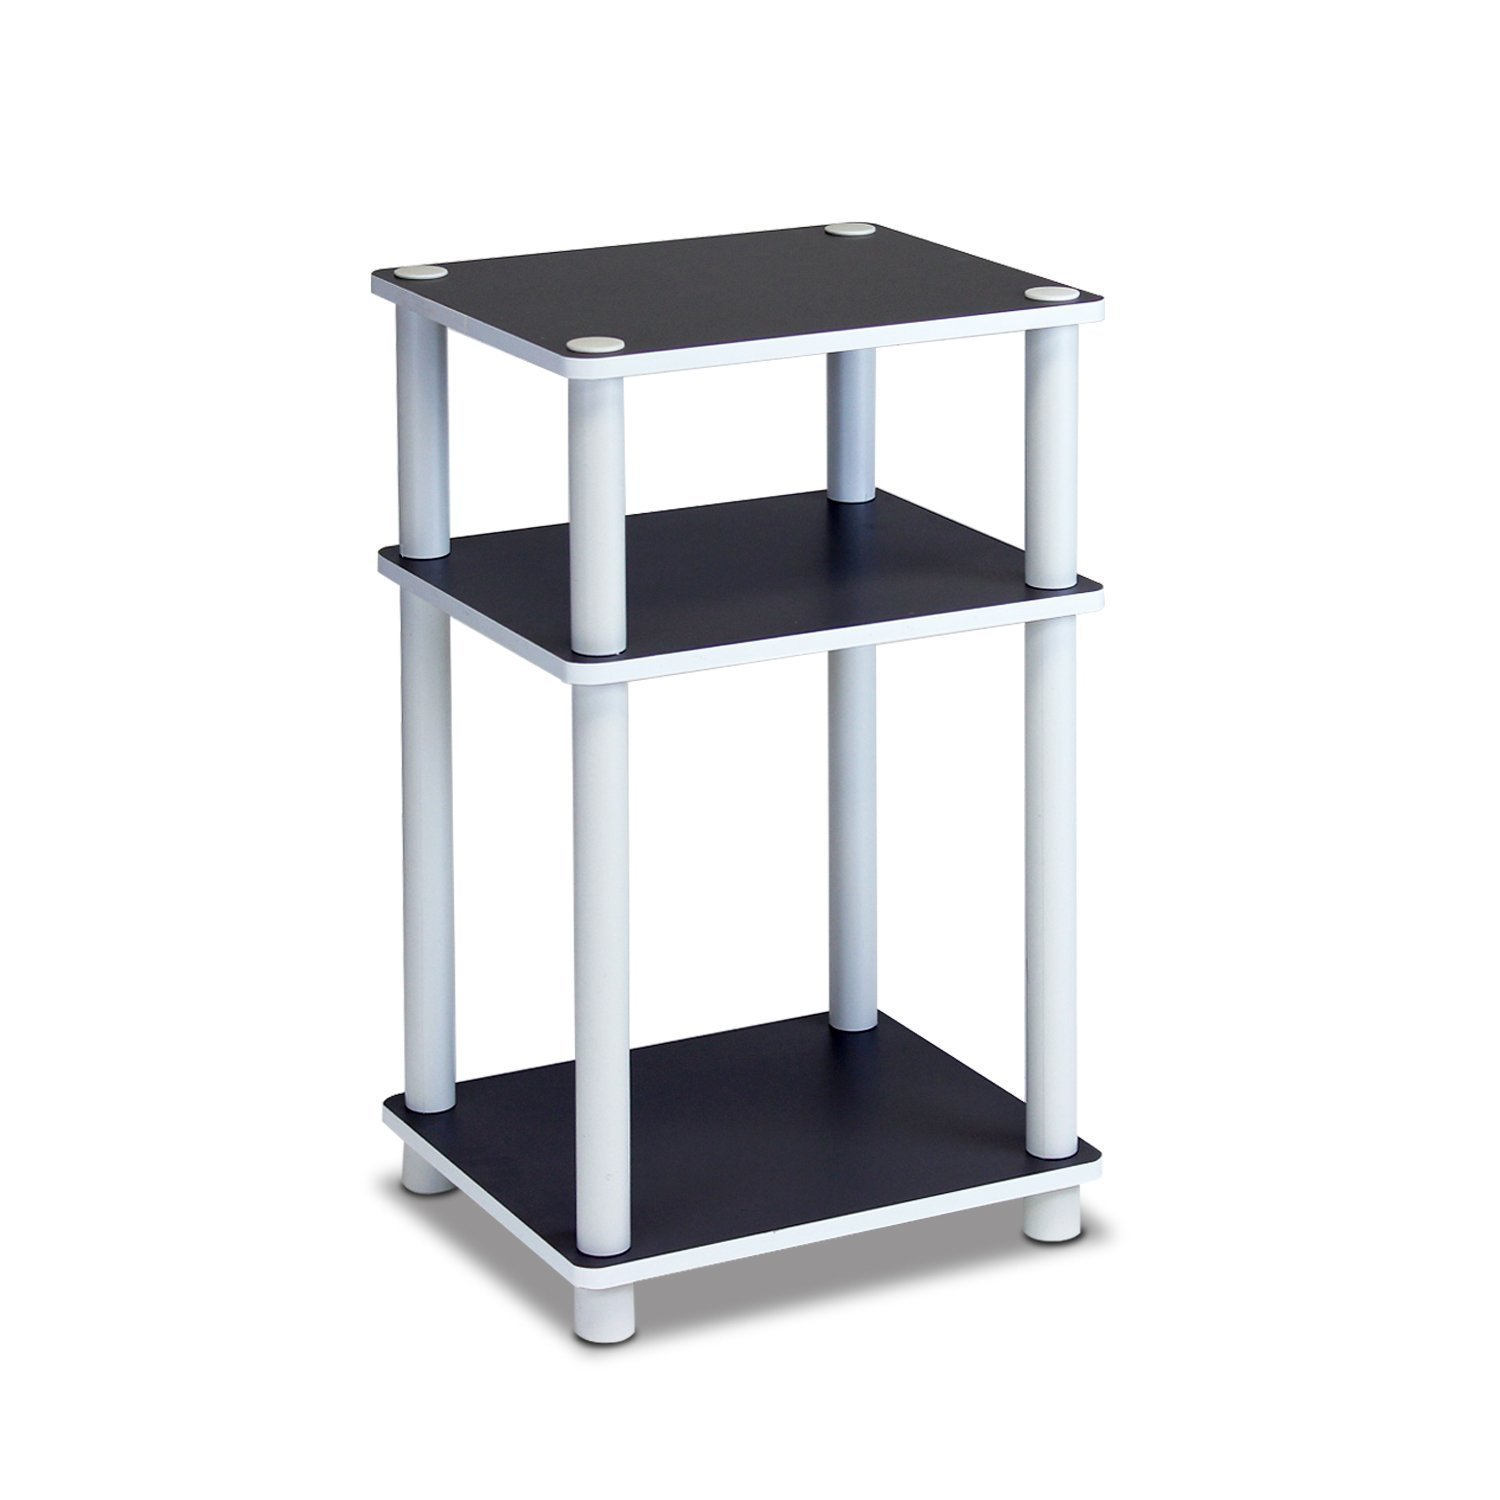 Furinno 11087 Just 3-Tier No Tools Dual Color Reversible End Table, White/Espresso (Pack of 2)